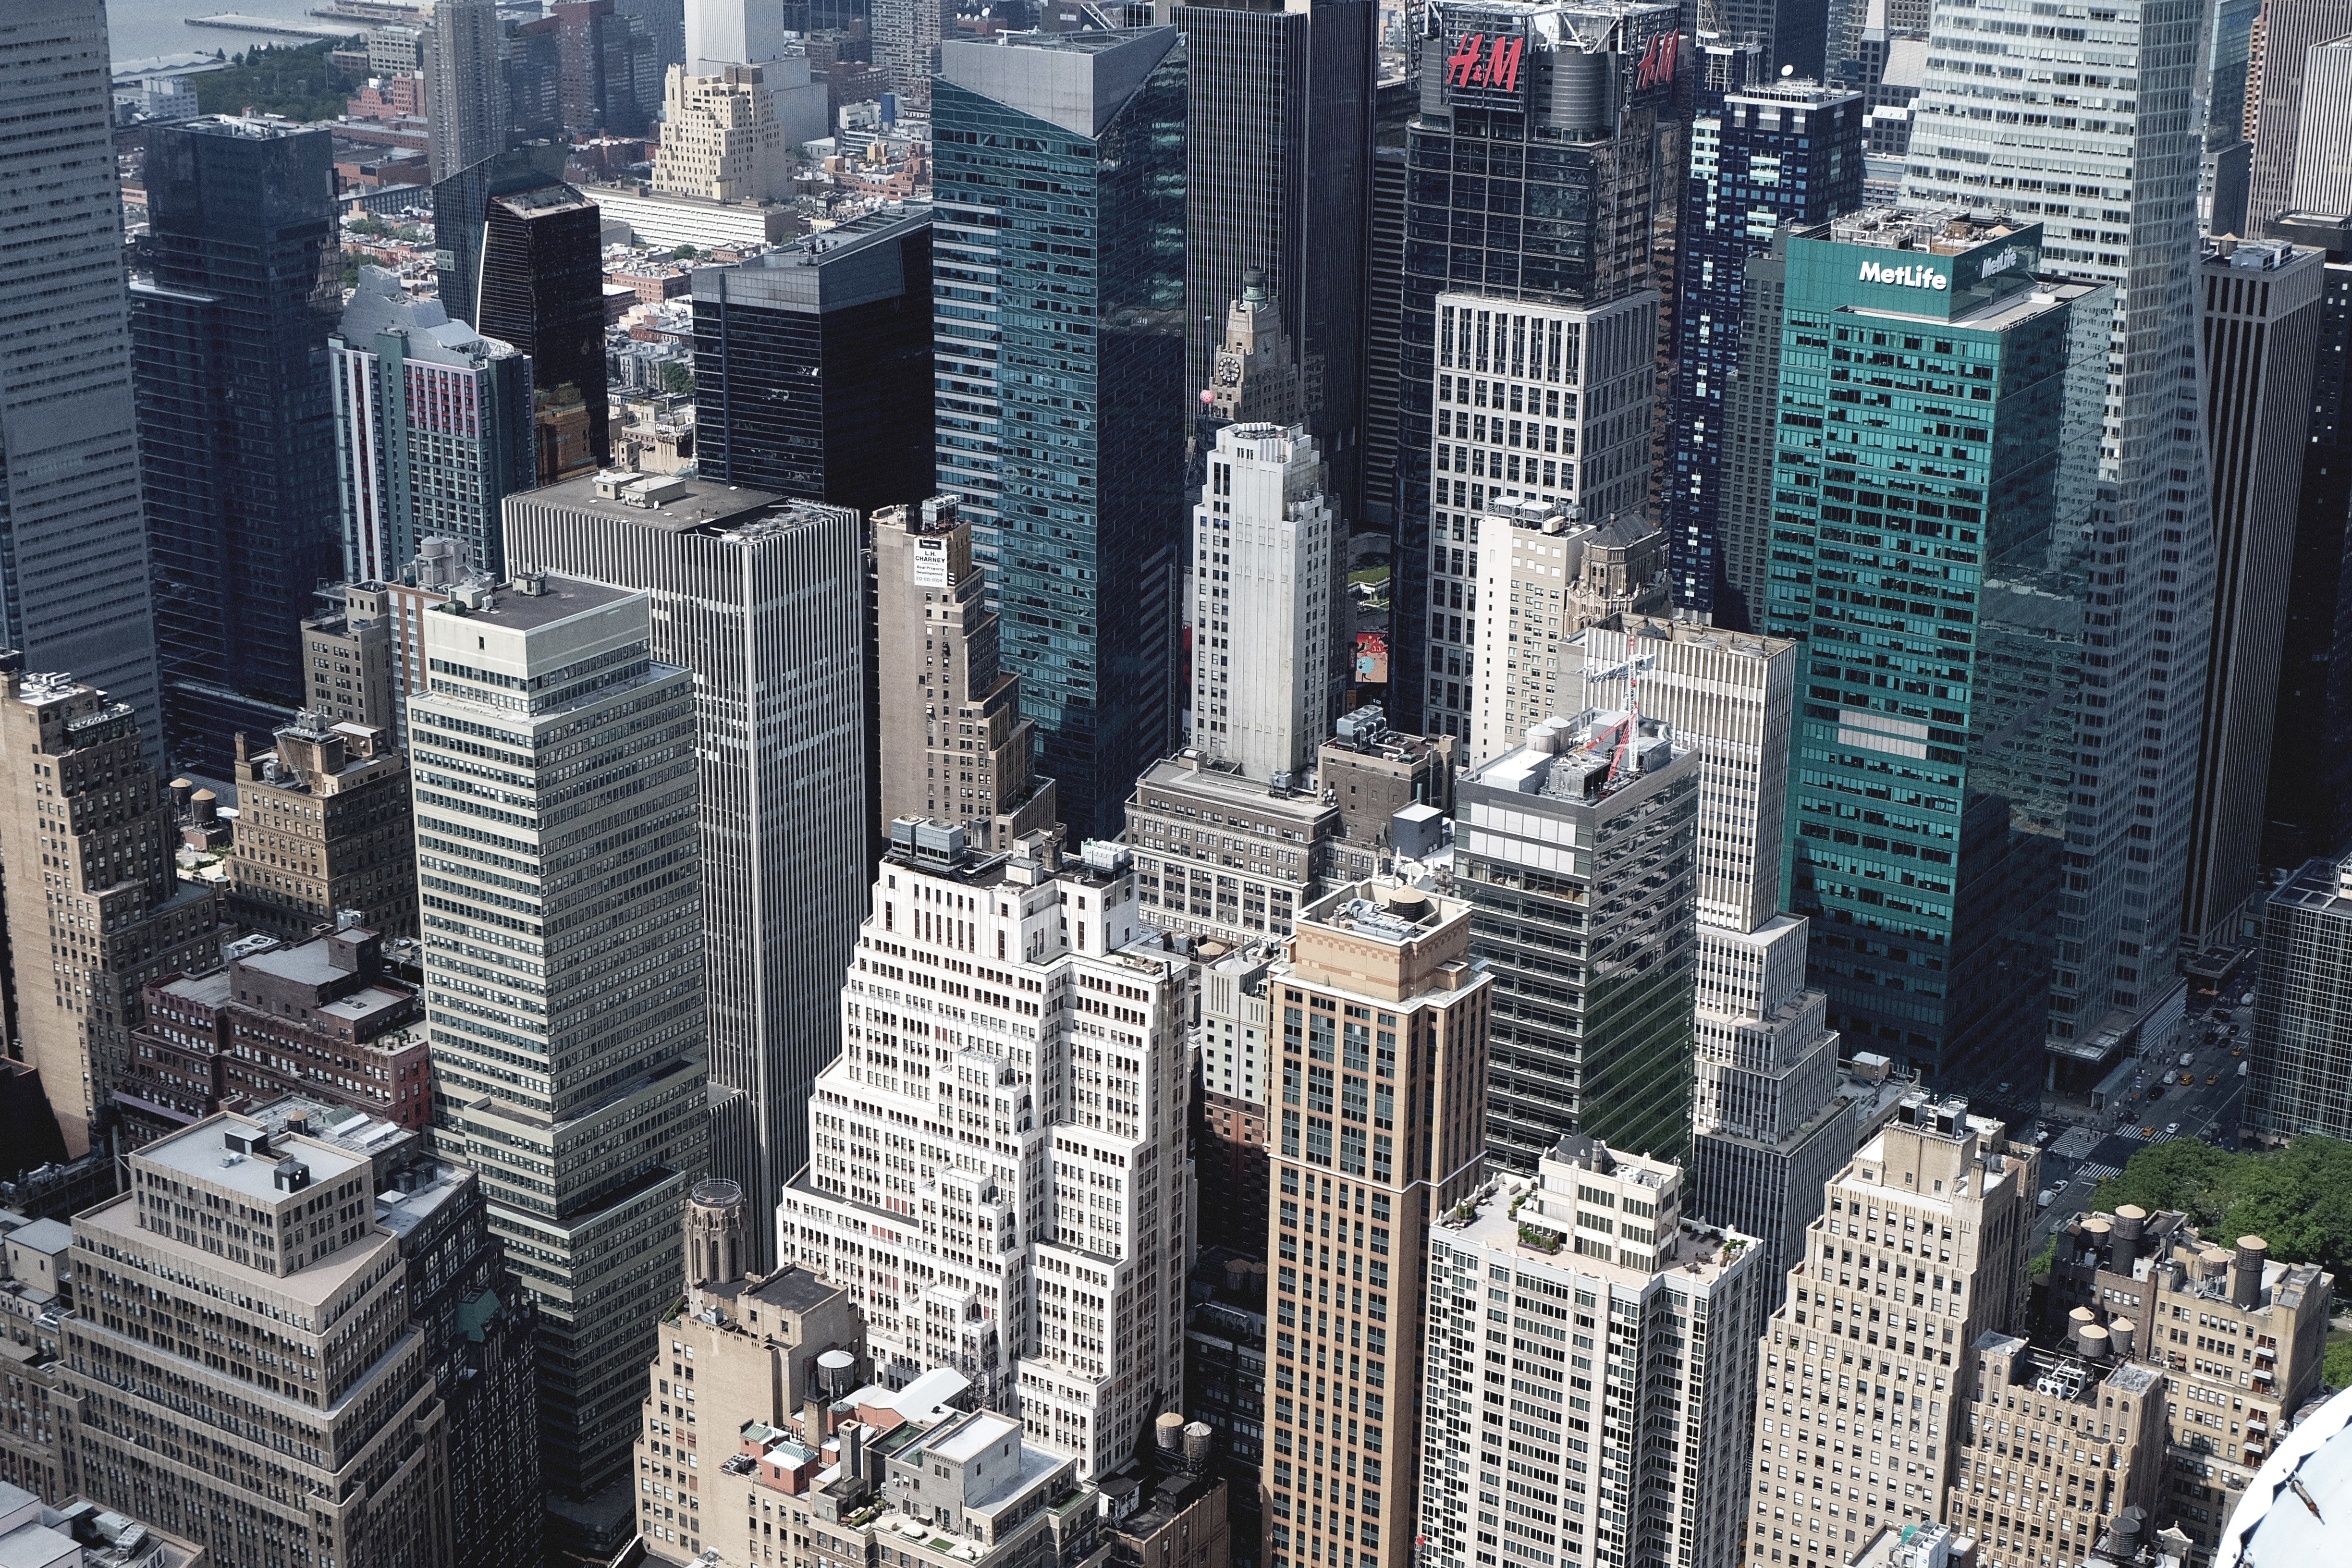 A high view of high-rises and skyscrapers in New York